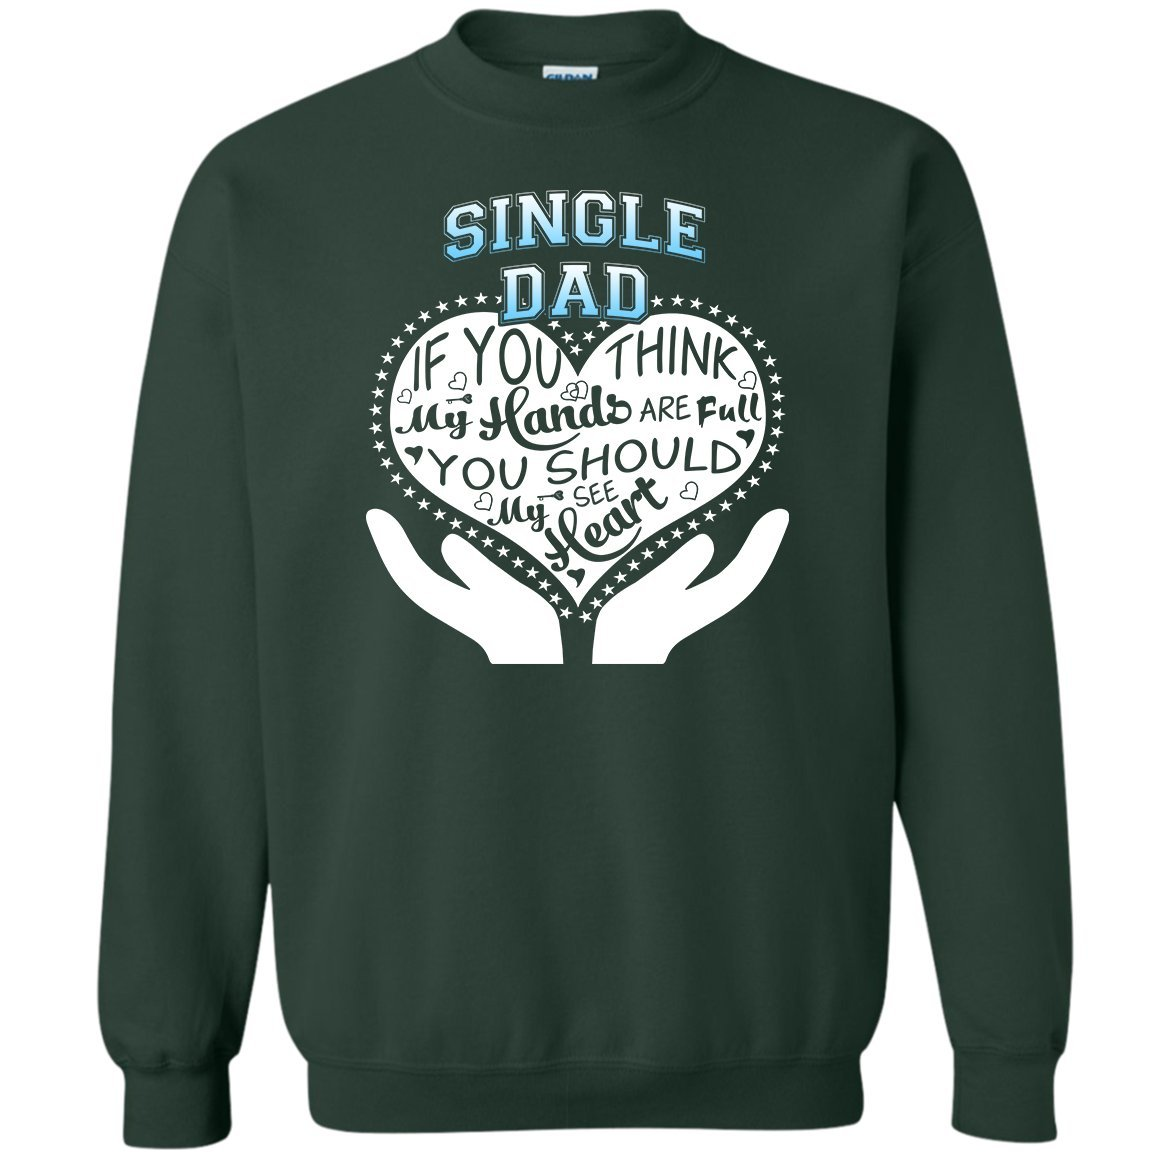 0296a49c Single Dad Shirt, Fathers Day Gift, Full Heart Full Hands Sweatshirt |  Amazon.com